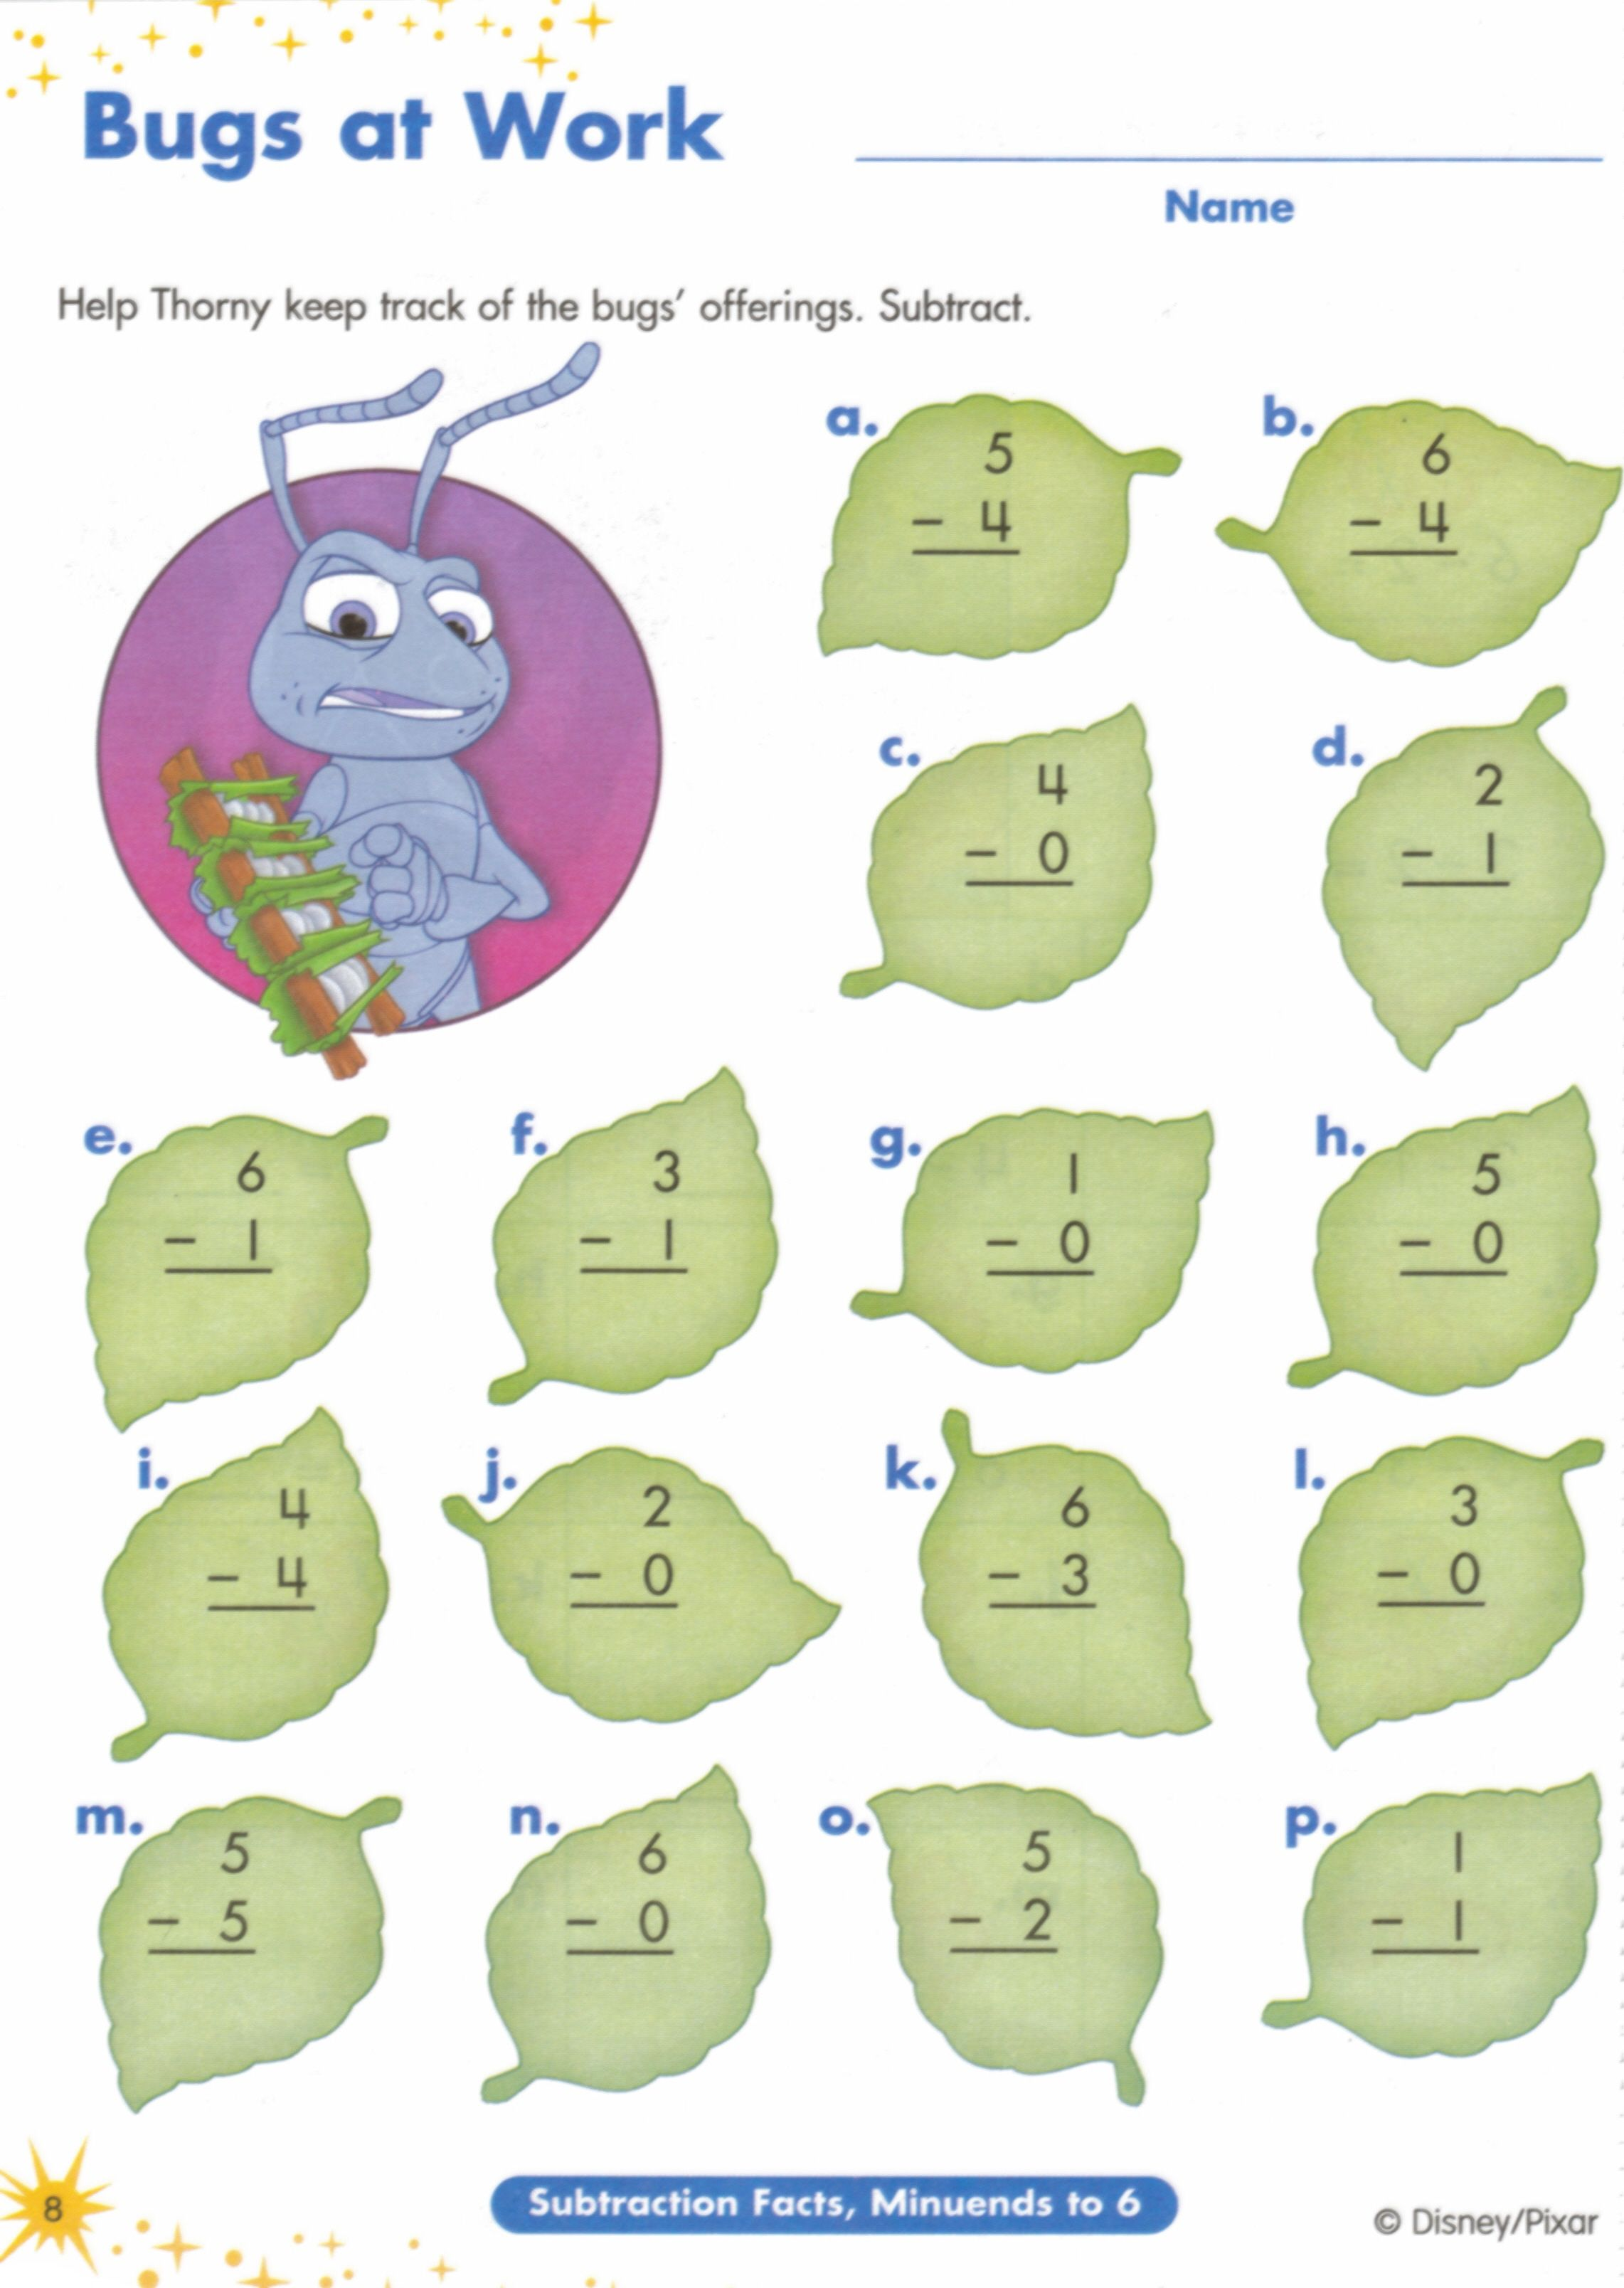 Proatmealus  Pretty  Images About Worksheets On Pinterest  Fun Facts For Kids  With Fetching  Images About Worksheets On Pinterest  Fun Facts For Kids Earth Day Worksheets And Jungles With Easy On The Eye Plural Nouns Worksheets For Kindergarten Also Education Com Free Worksheets In Addition Insert Worksheet Excel And Once Upon A Swallow Worksheet Answers As Well As Free Excel Practice Worksheets Additionally Skeleton Worksheet Ks From Pinterestcom With Proatmealus  Fetching  Images About Worksheets On Pinterest  Fun Facts For Kids  With Easy On The Eye  Images About Worksheets On Pinterest  Fun Facts For Kids Earth Day Worksheets And Jungles And Pretty Plural Nouns Worksheets For Kindergarten Also Education Com Free Worksheets In Addition Insert Worksheet Excel From Pinterestcom